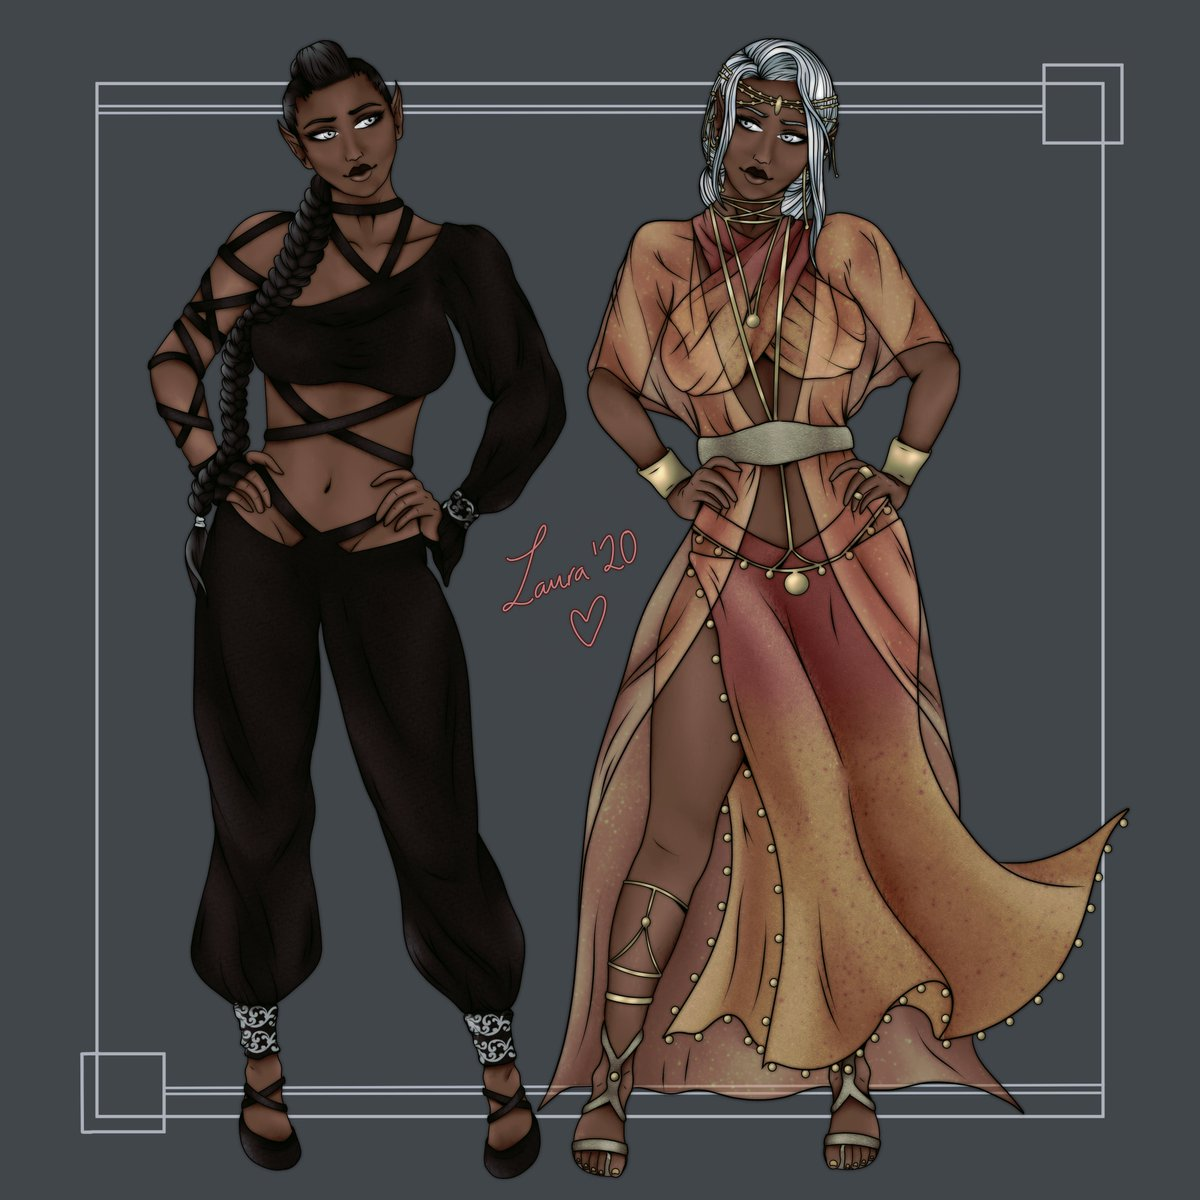 Finished up Aria's alternative looks. The left is a disguise for an upcoming undercover mission, and the right is her usual look  #ttrpg #savageworlds https://t.co/7xd0esZ7hY